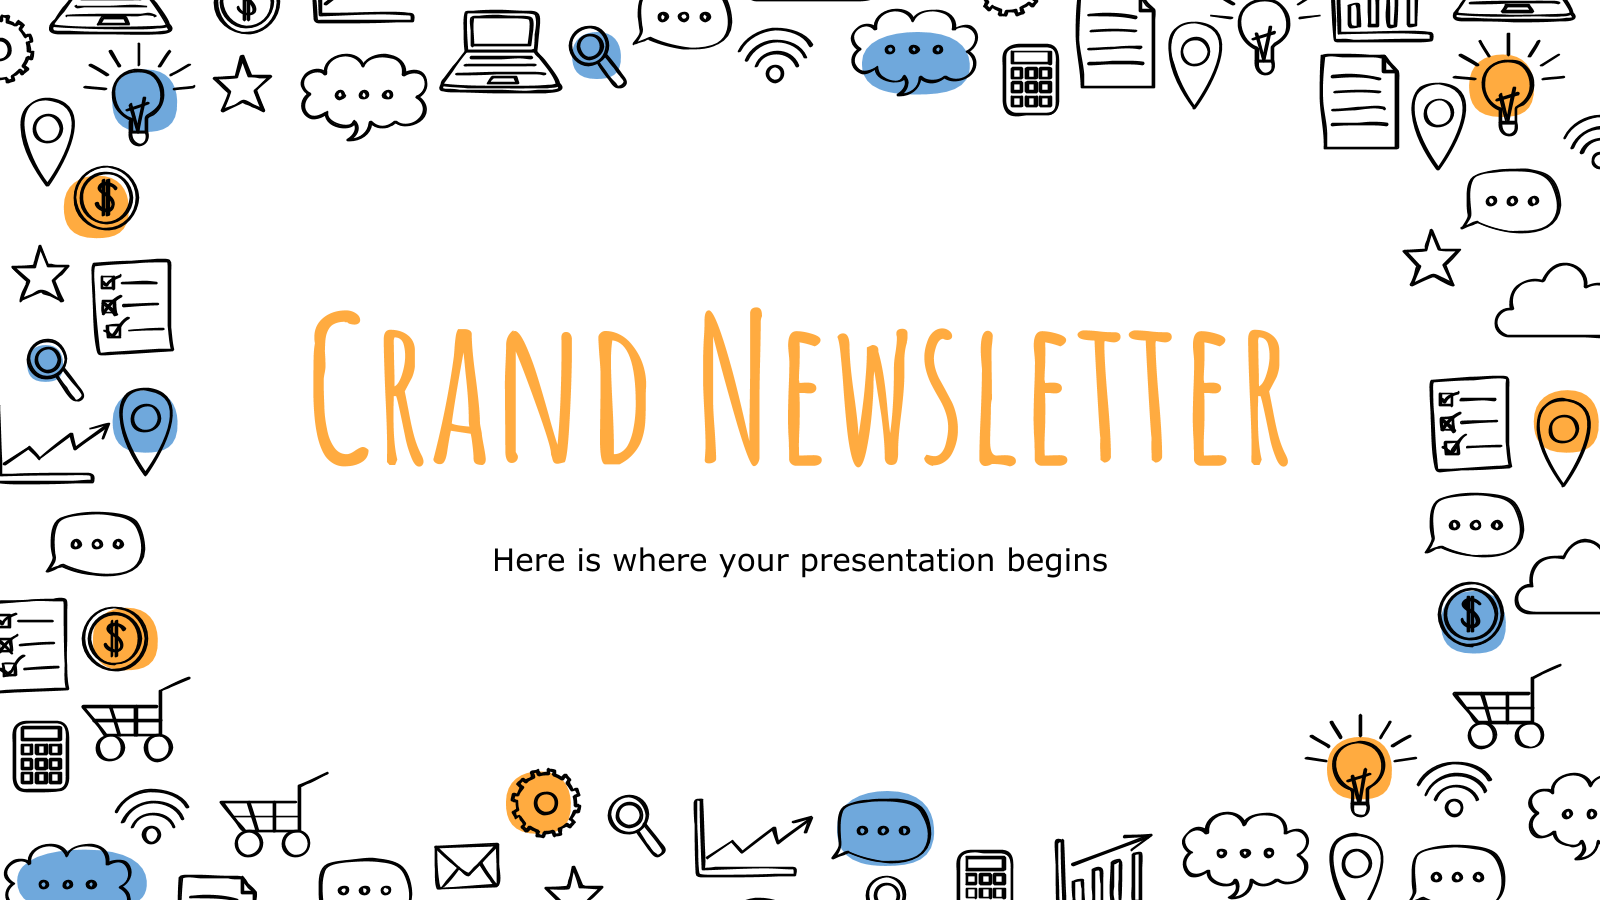 Crand Newsletter presentation template